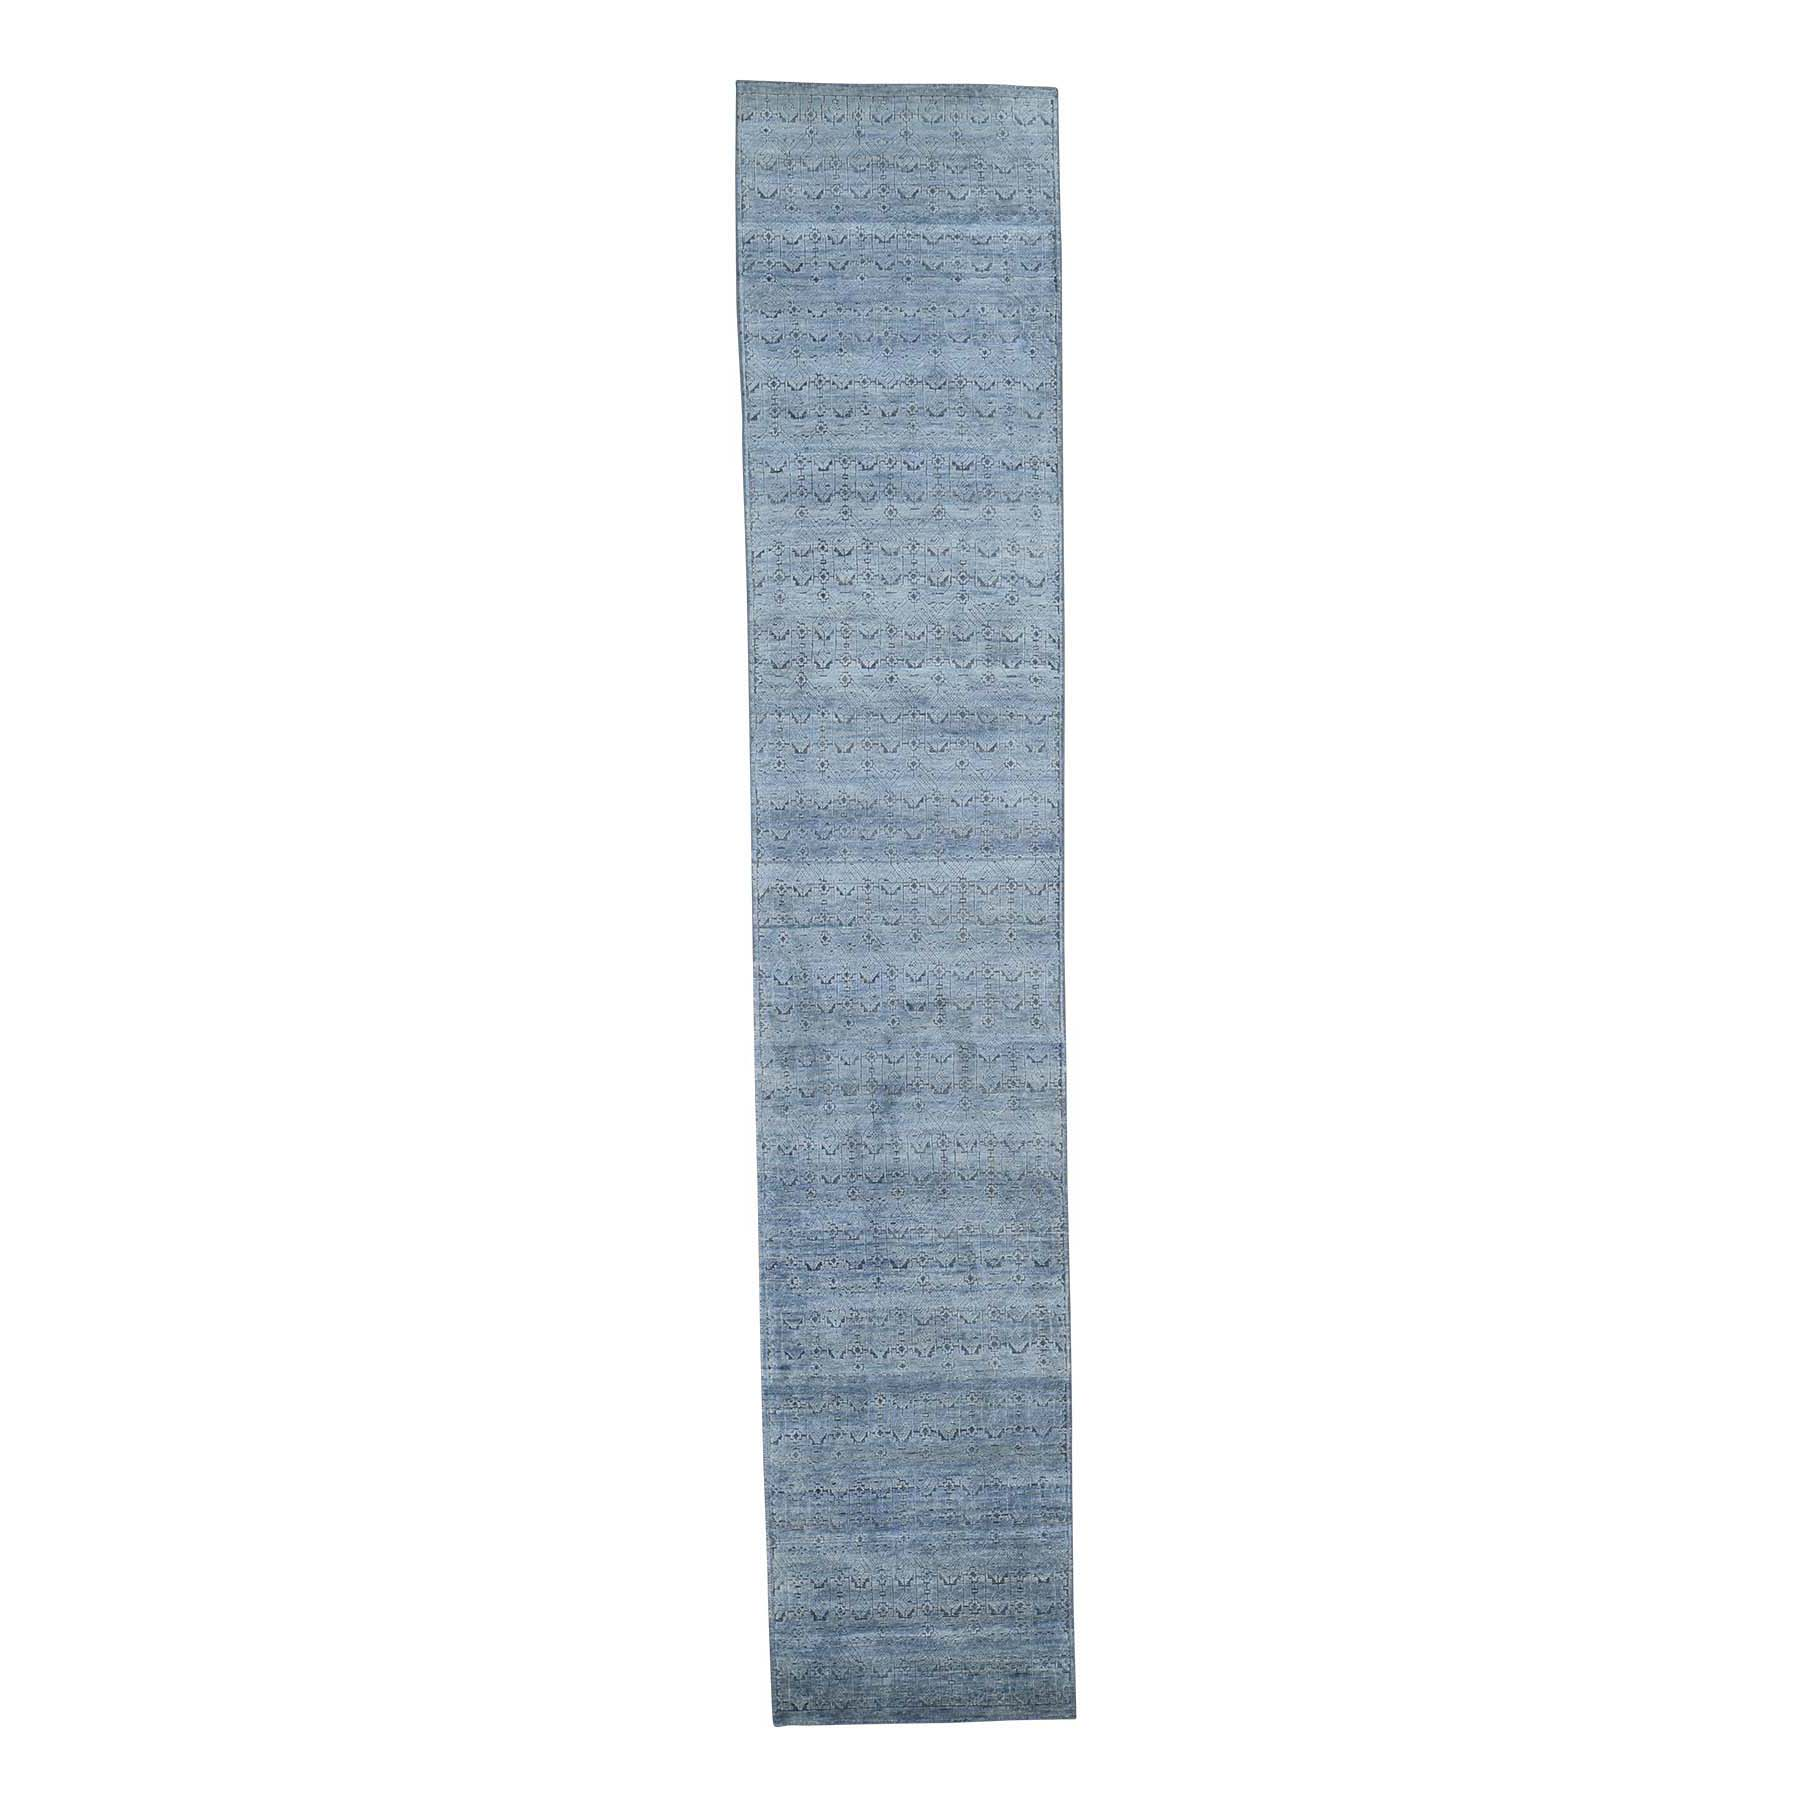 Wool and Real Silk Collection Hand Knotted Grey Rug No: 0191748